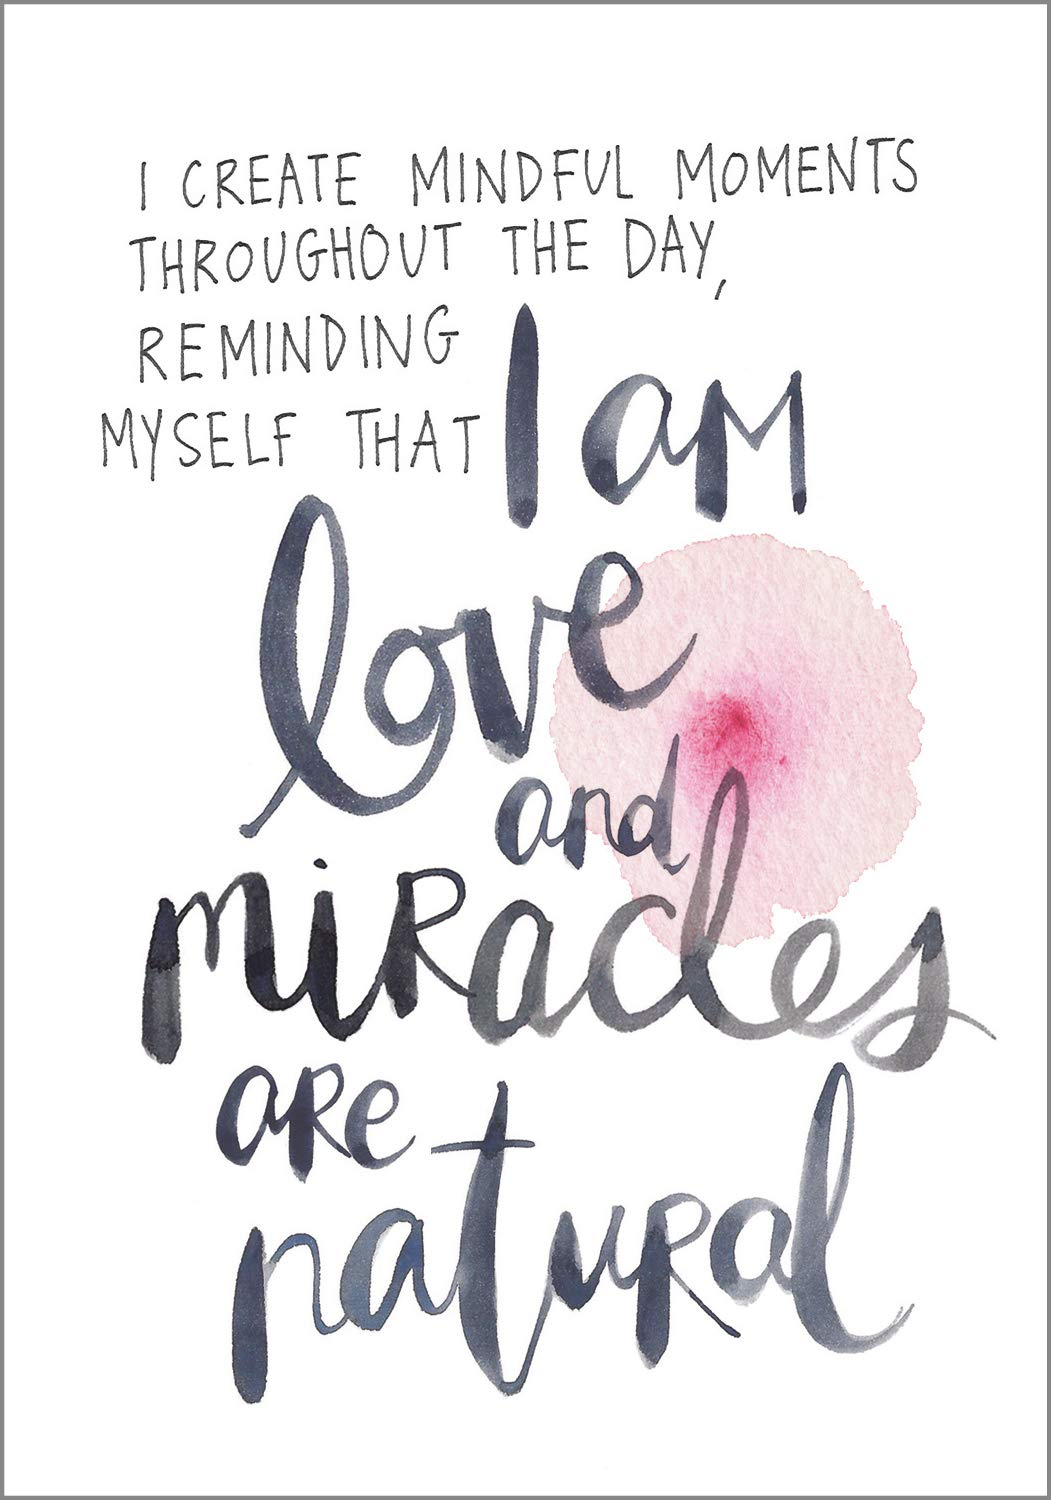 I create mindful moments throughout the day, reminding myself that I am love and miracles are natural. COME DISCOVER more inspiring words of wisdom, encouraging quotes, and affirmations on Hello Lovely Studio.